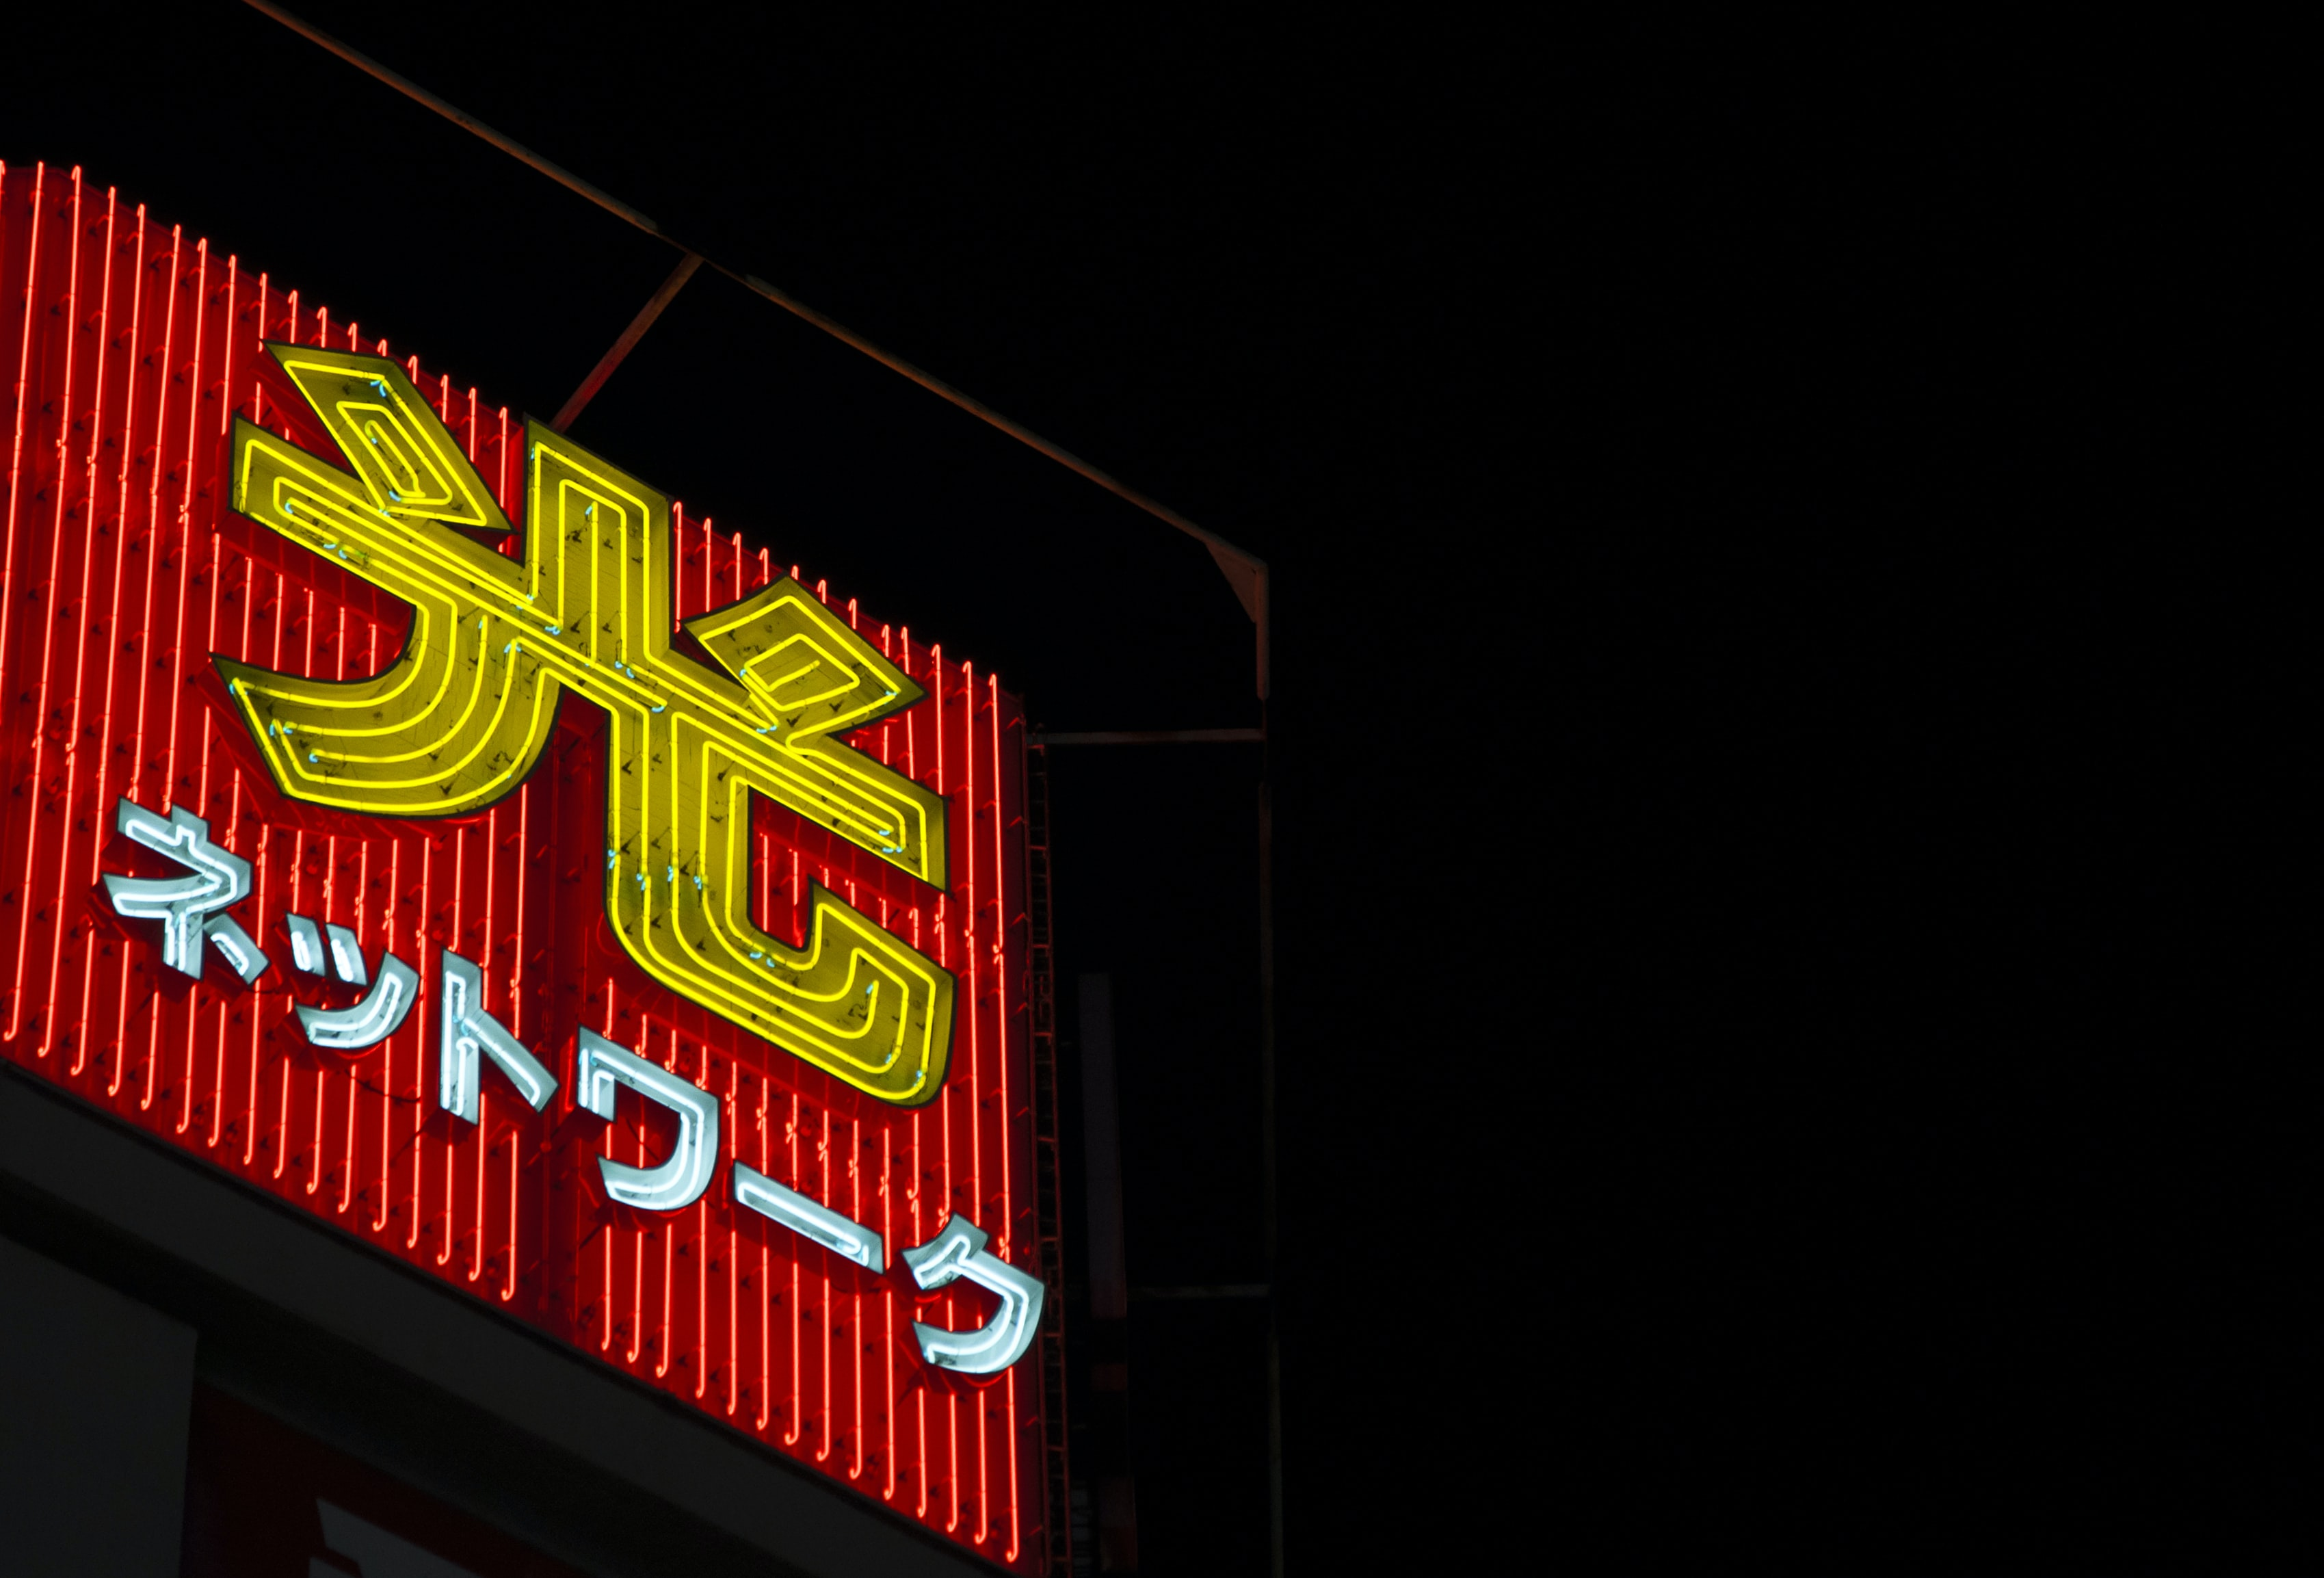 yellow, red, and white kanji text neon light signag